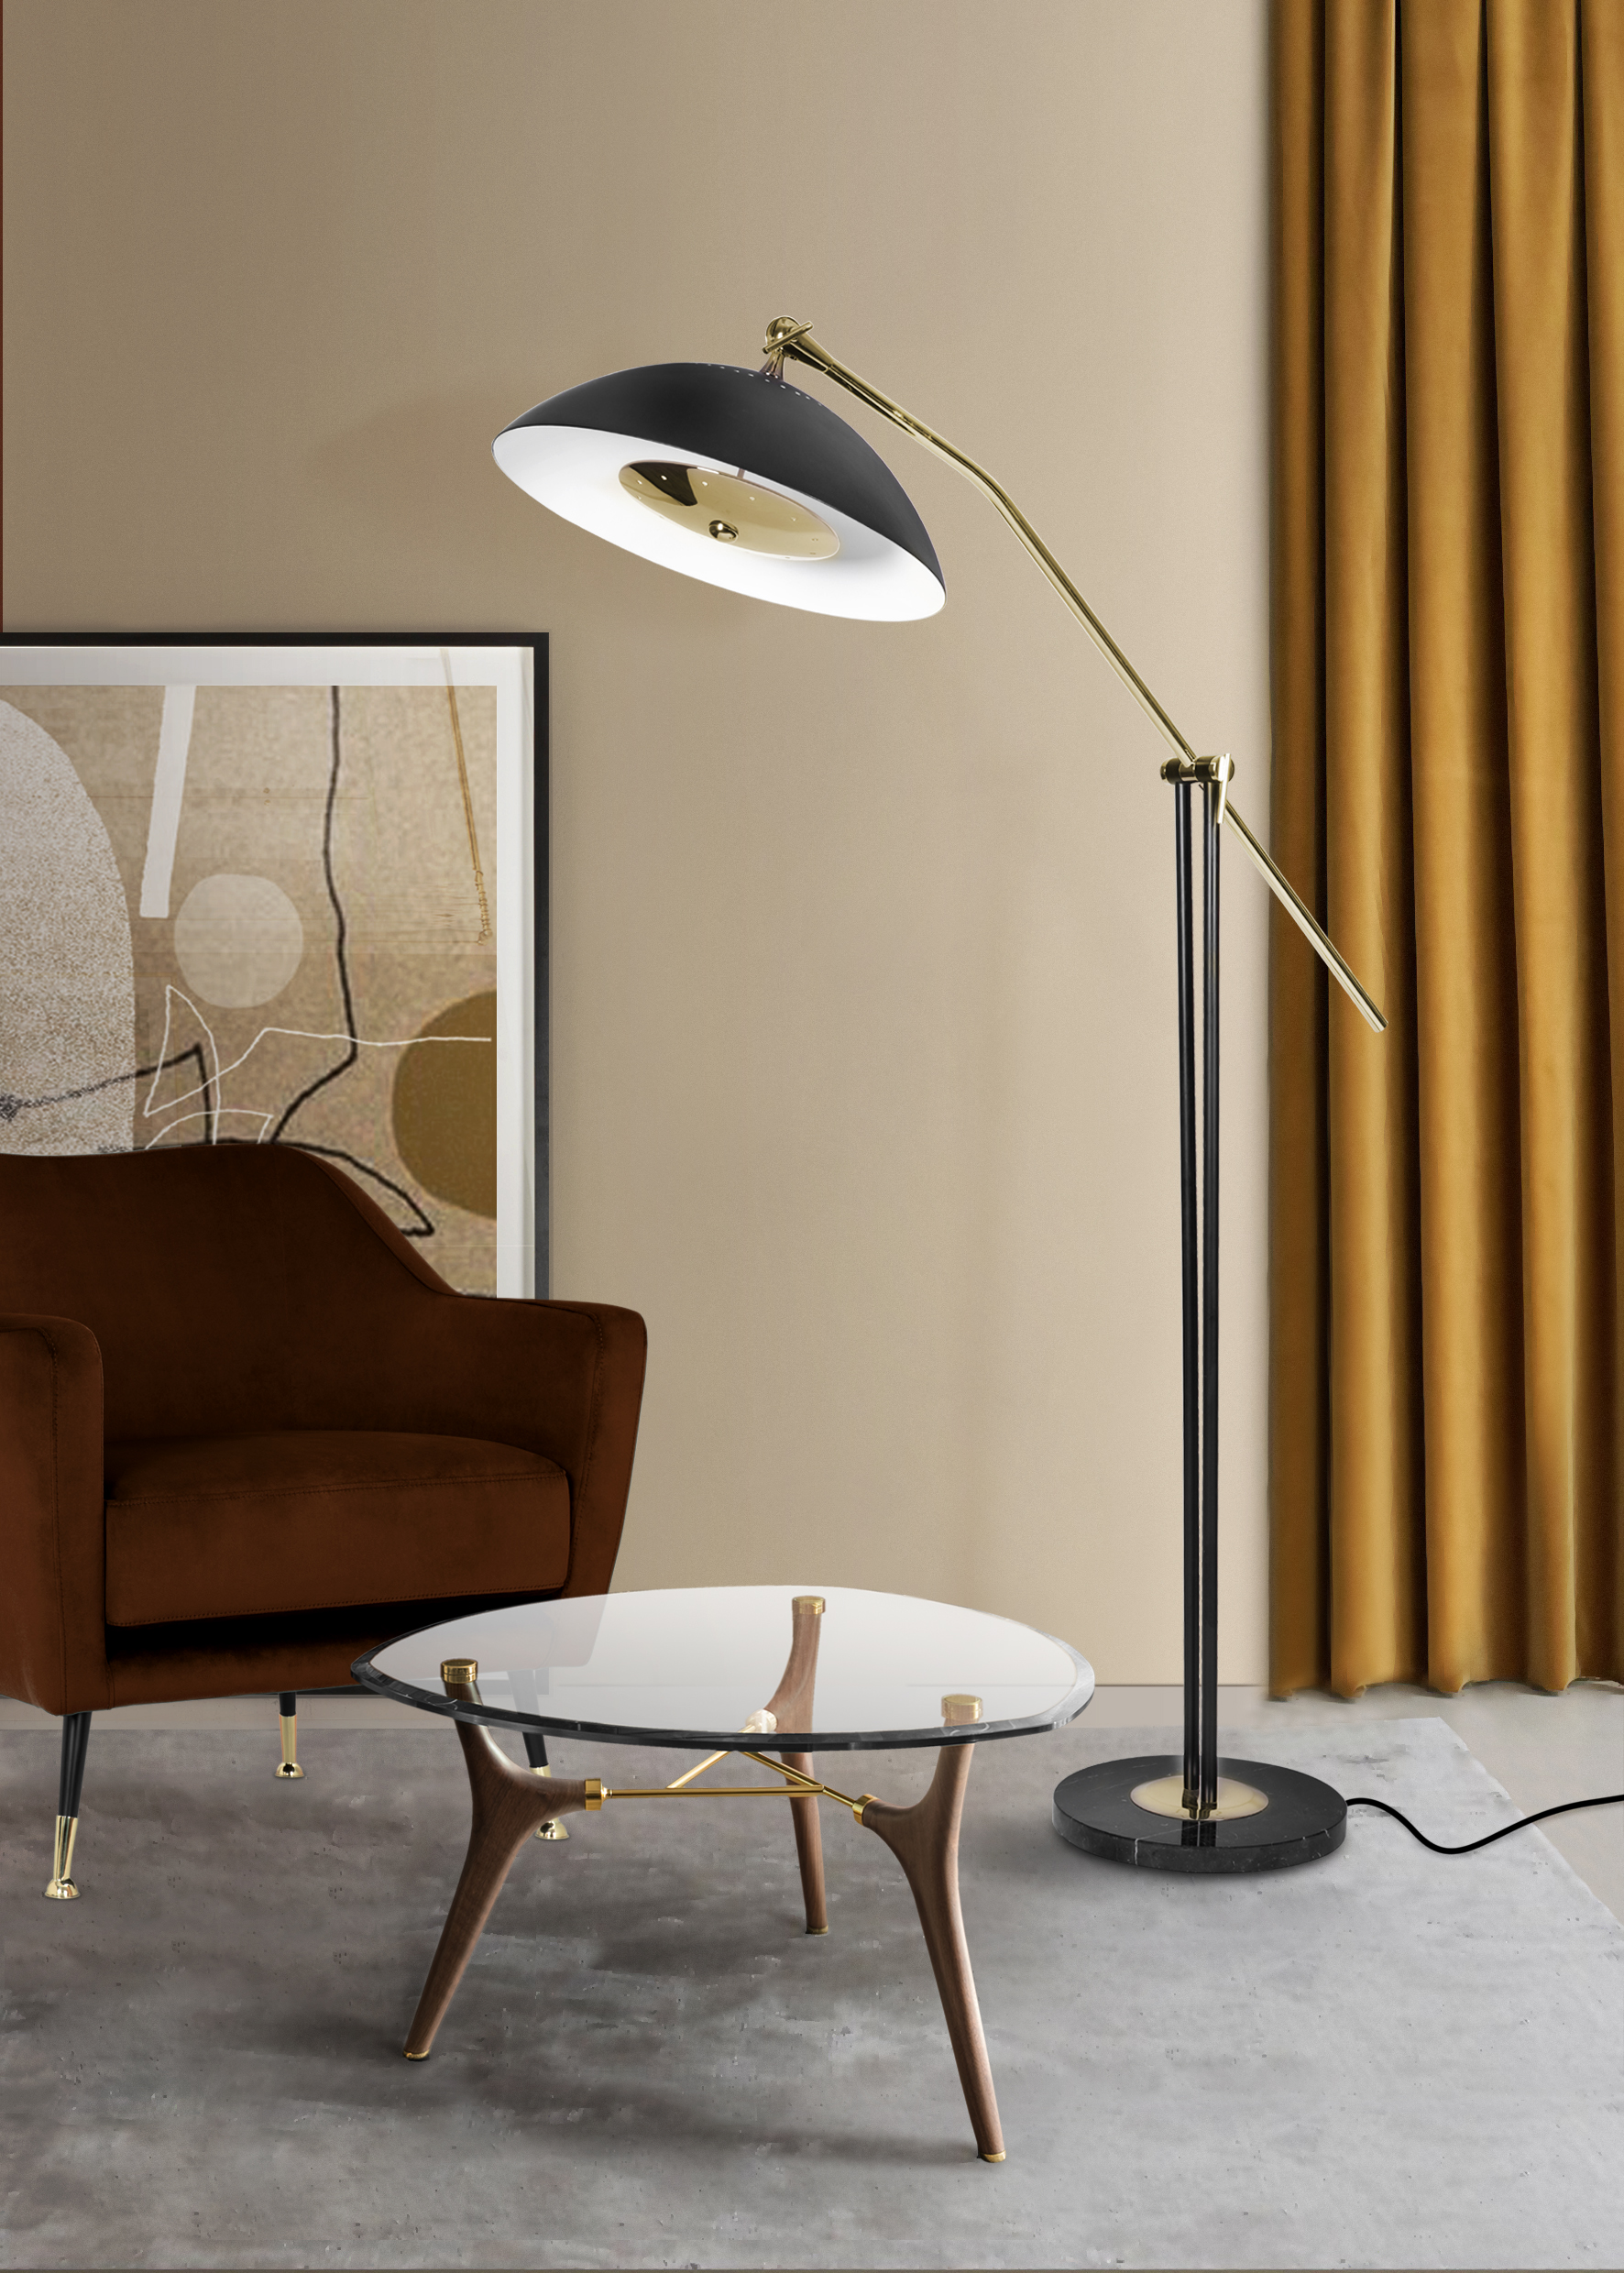 Check Out These 5 Lighting Design Trends for 2020 Before Heading to the Showroom! lighting design trends Check Out These 5 Fall Lighting Design Trends for 2020 Before Heading to the Showroom! 5 3